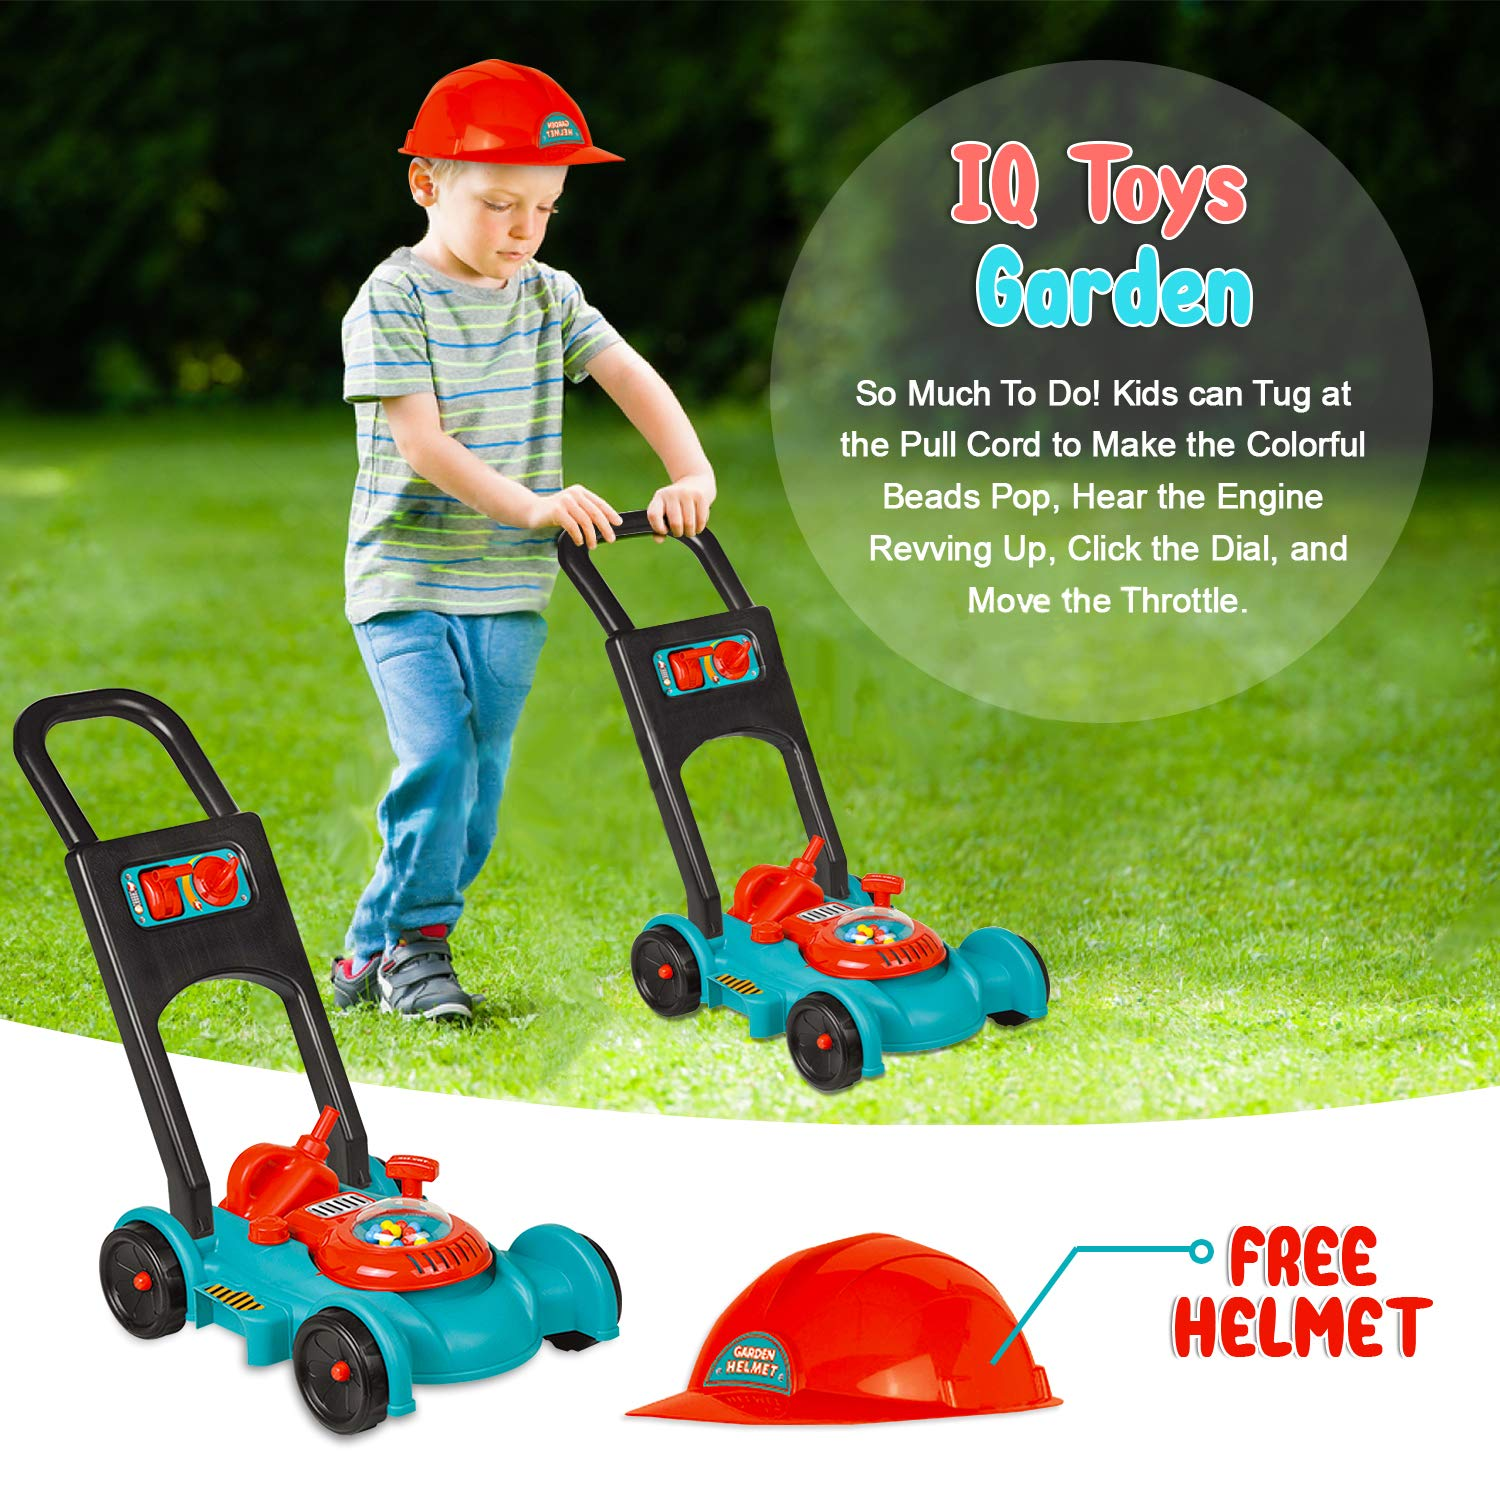 IQ Toys Garden Gas Lawn Mower with Gardener Hat and Pretend Gas Tank for Kids